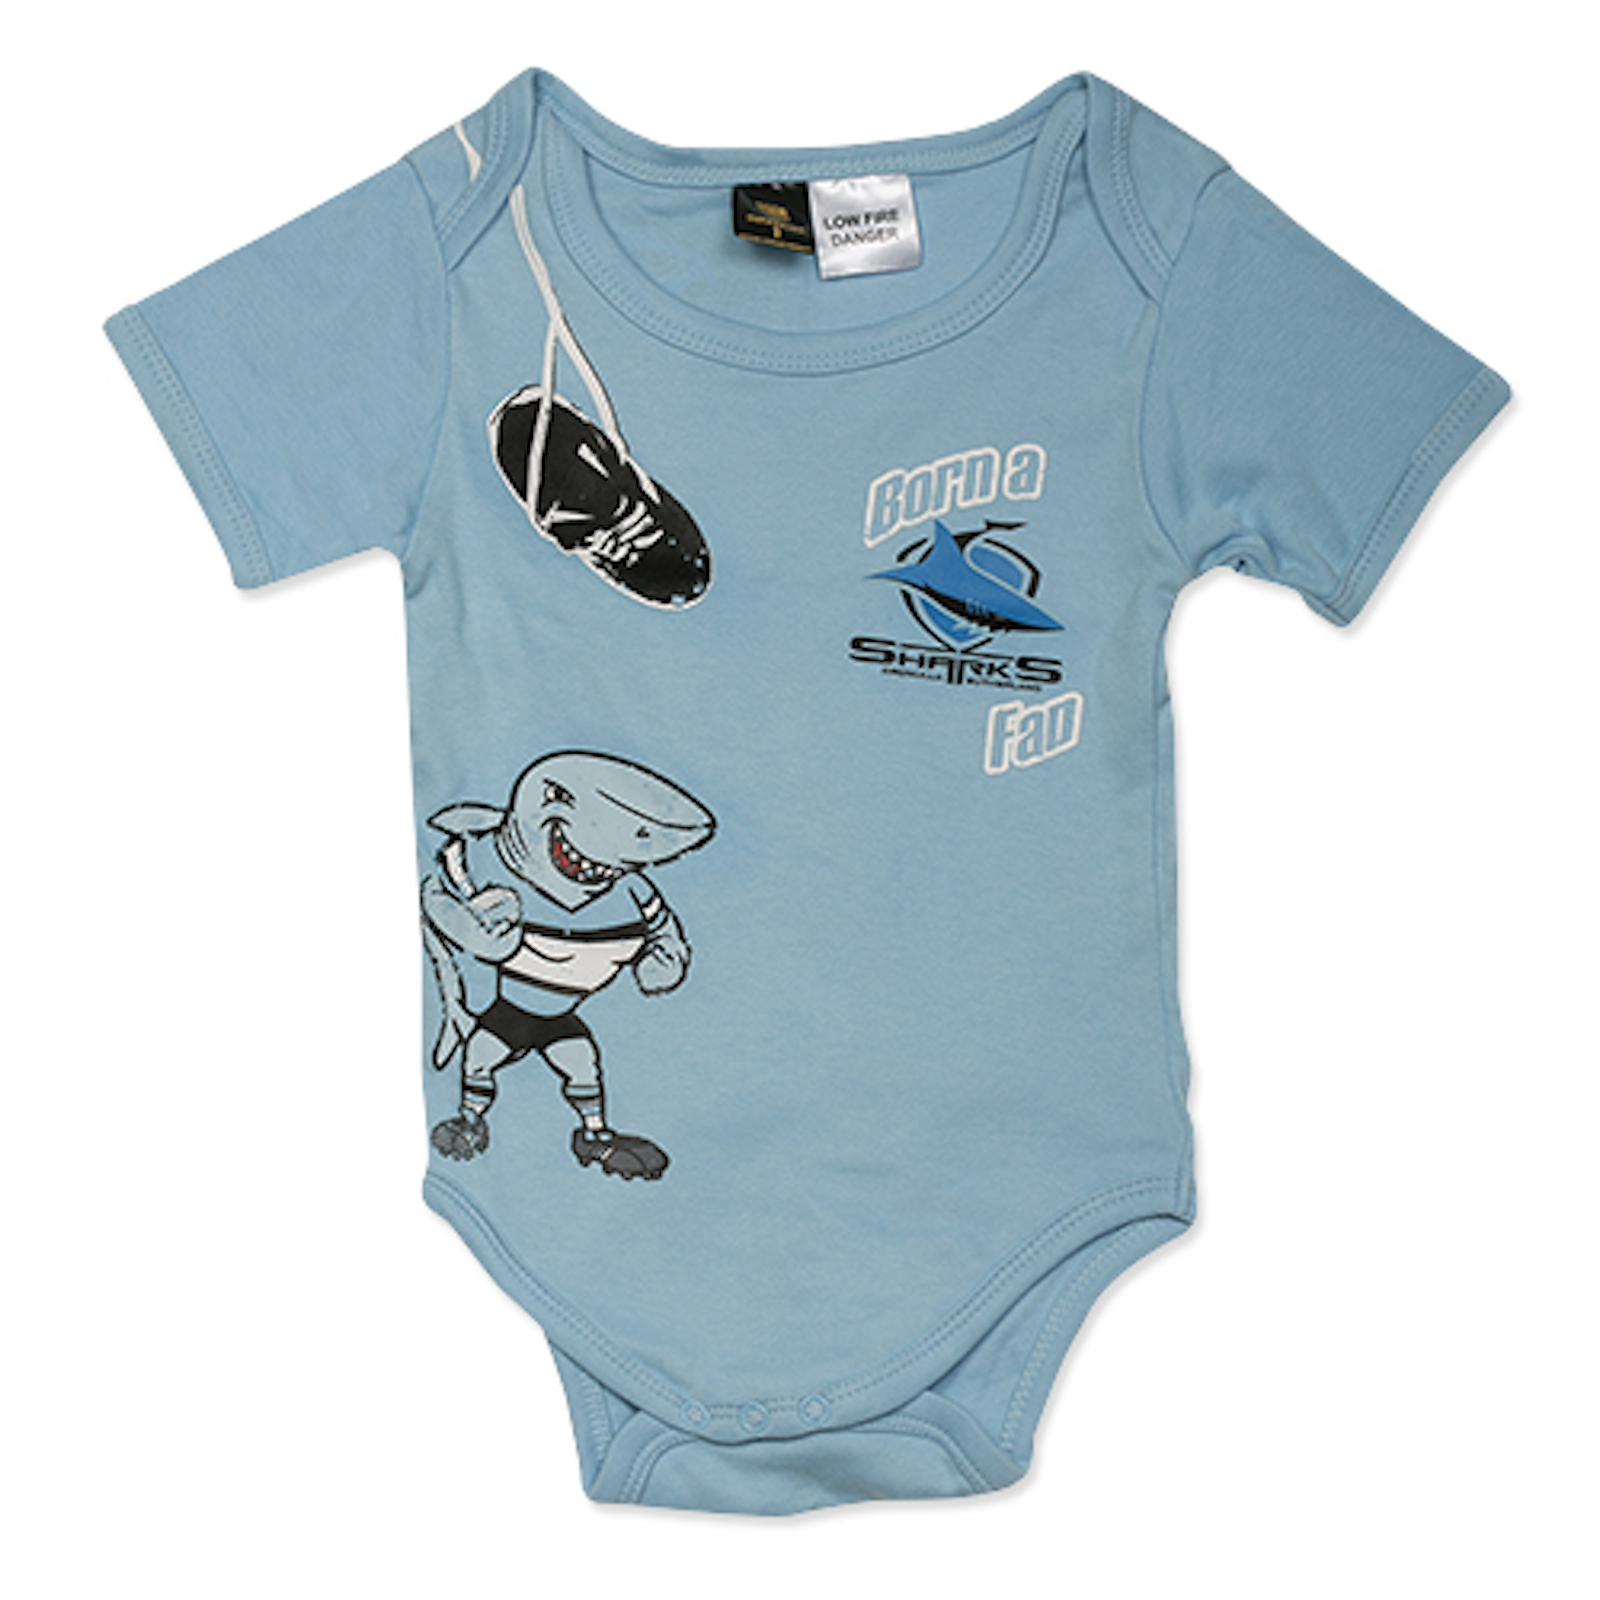 Cronulla Sharks NRL Baby Infants Bodysuit size 1